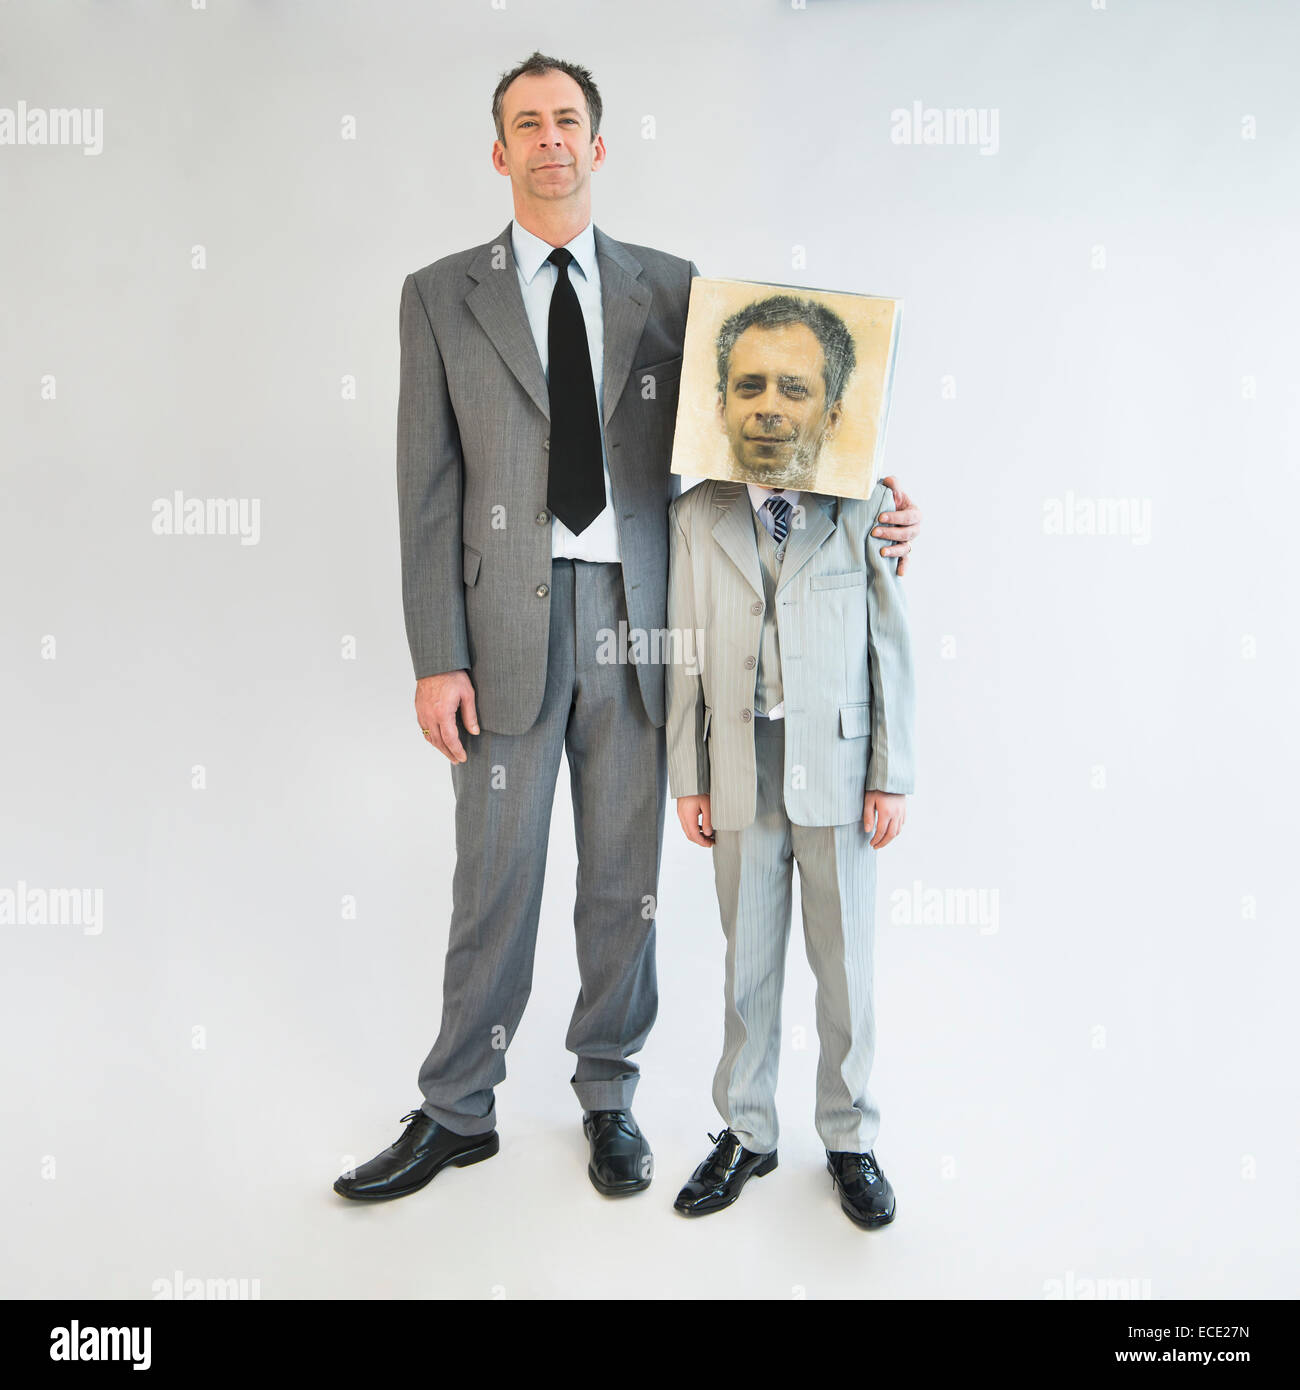 Businessman showing unity and standing near boy wearing mask - Stock Image